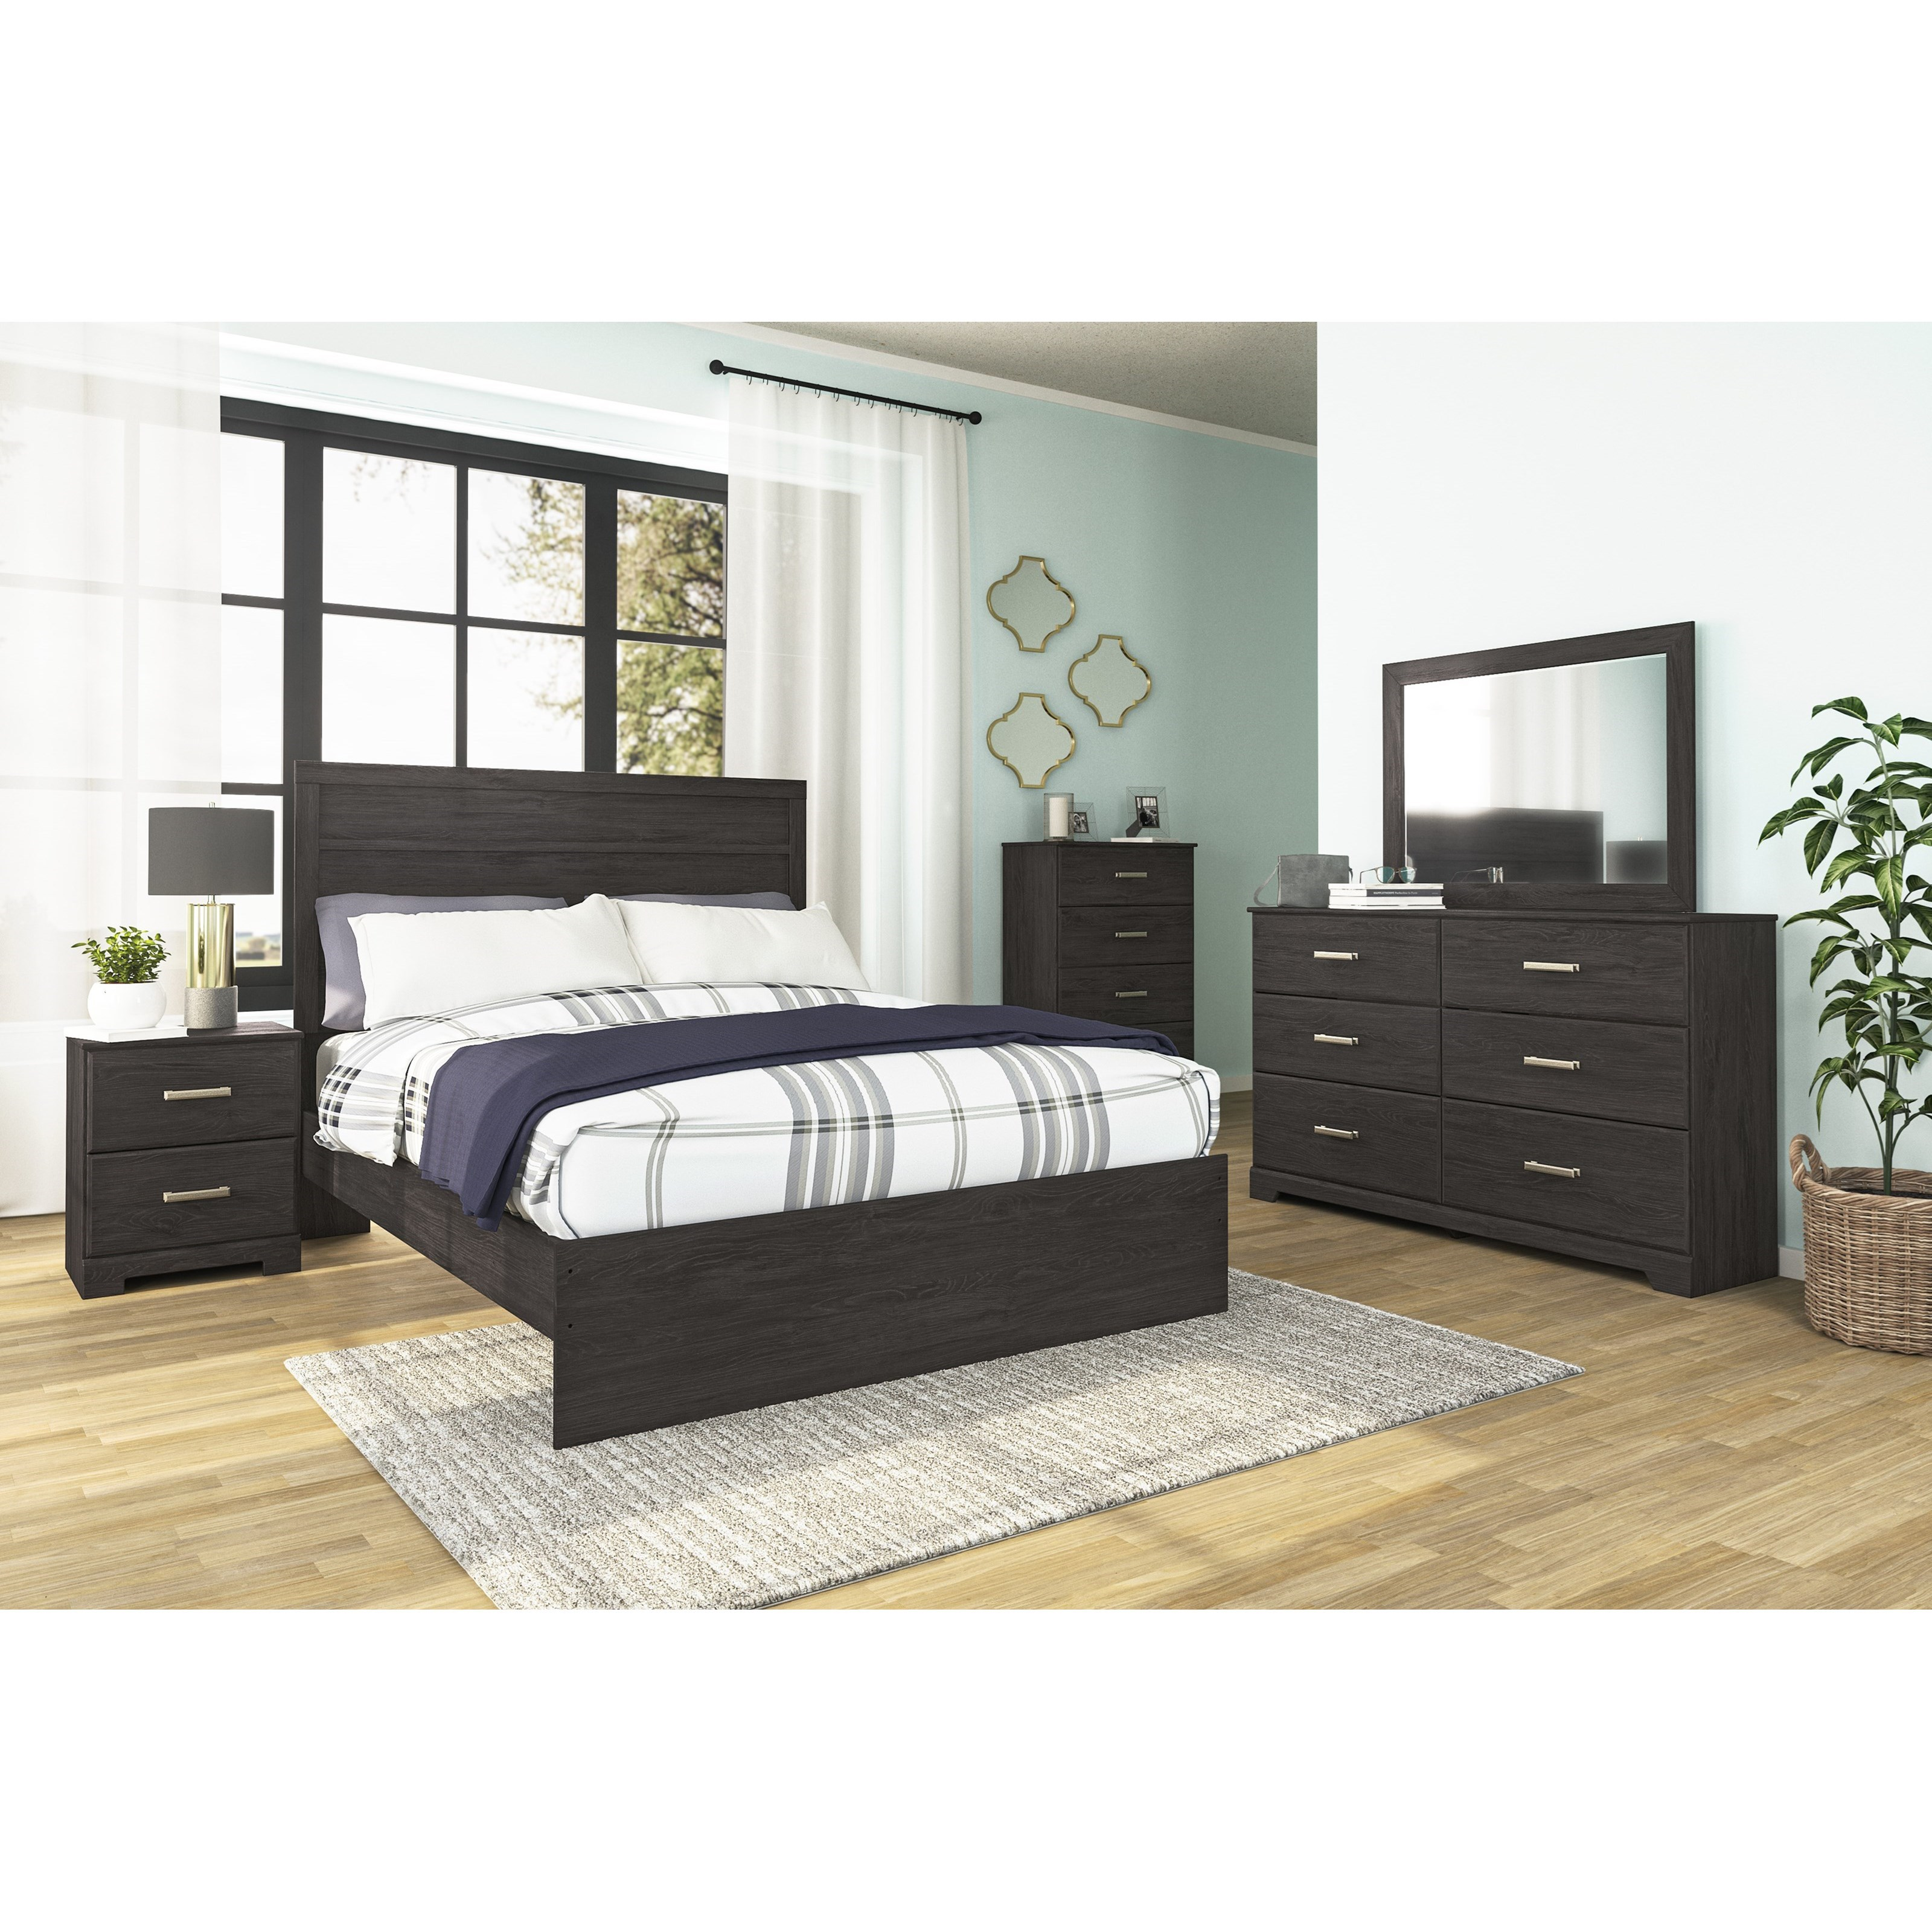 Belachime Queen Bedroom Group by Signature Design by Ashley at Sparks HomeStore